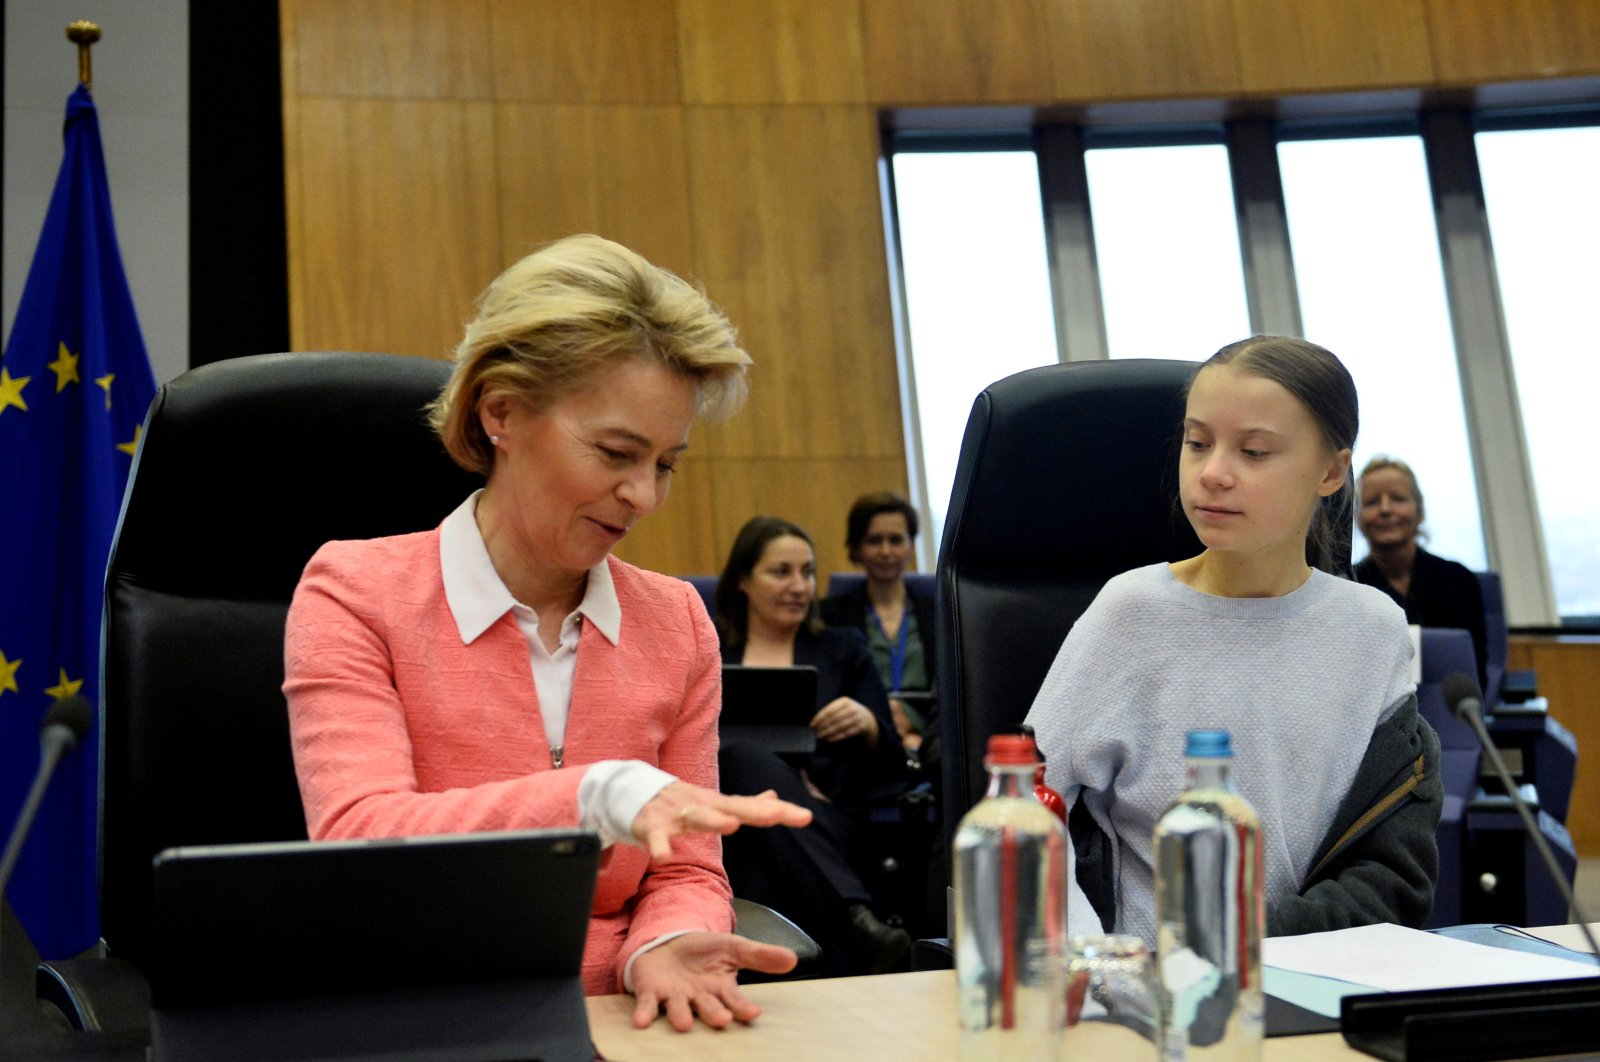 European Commission President Ursula Von der Leyen reacts as she attends a meeting with Swedish climate activist Greta Thunberg and European Commissioners at the European Commission in Brussels, Belgium, March 4, 2020. (Reuters Photo)